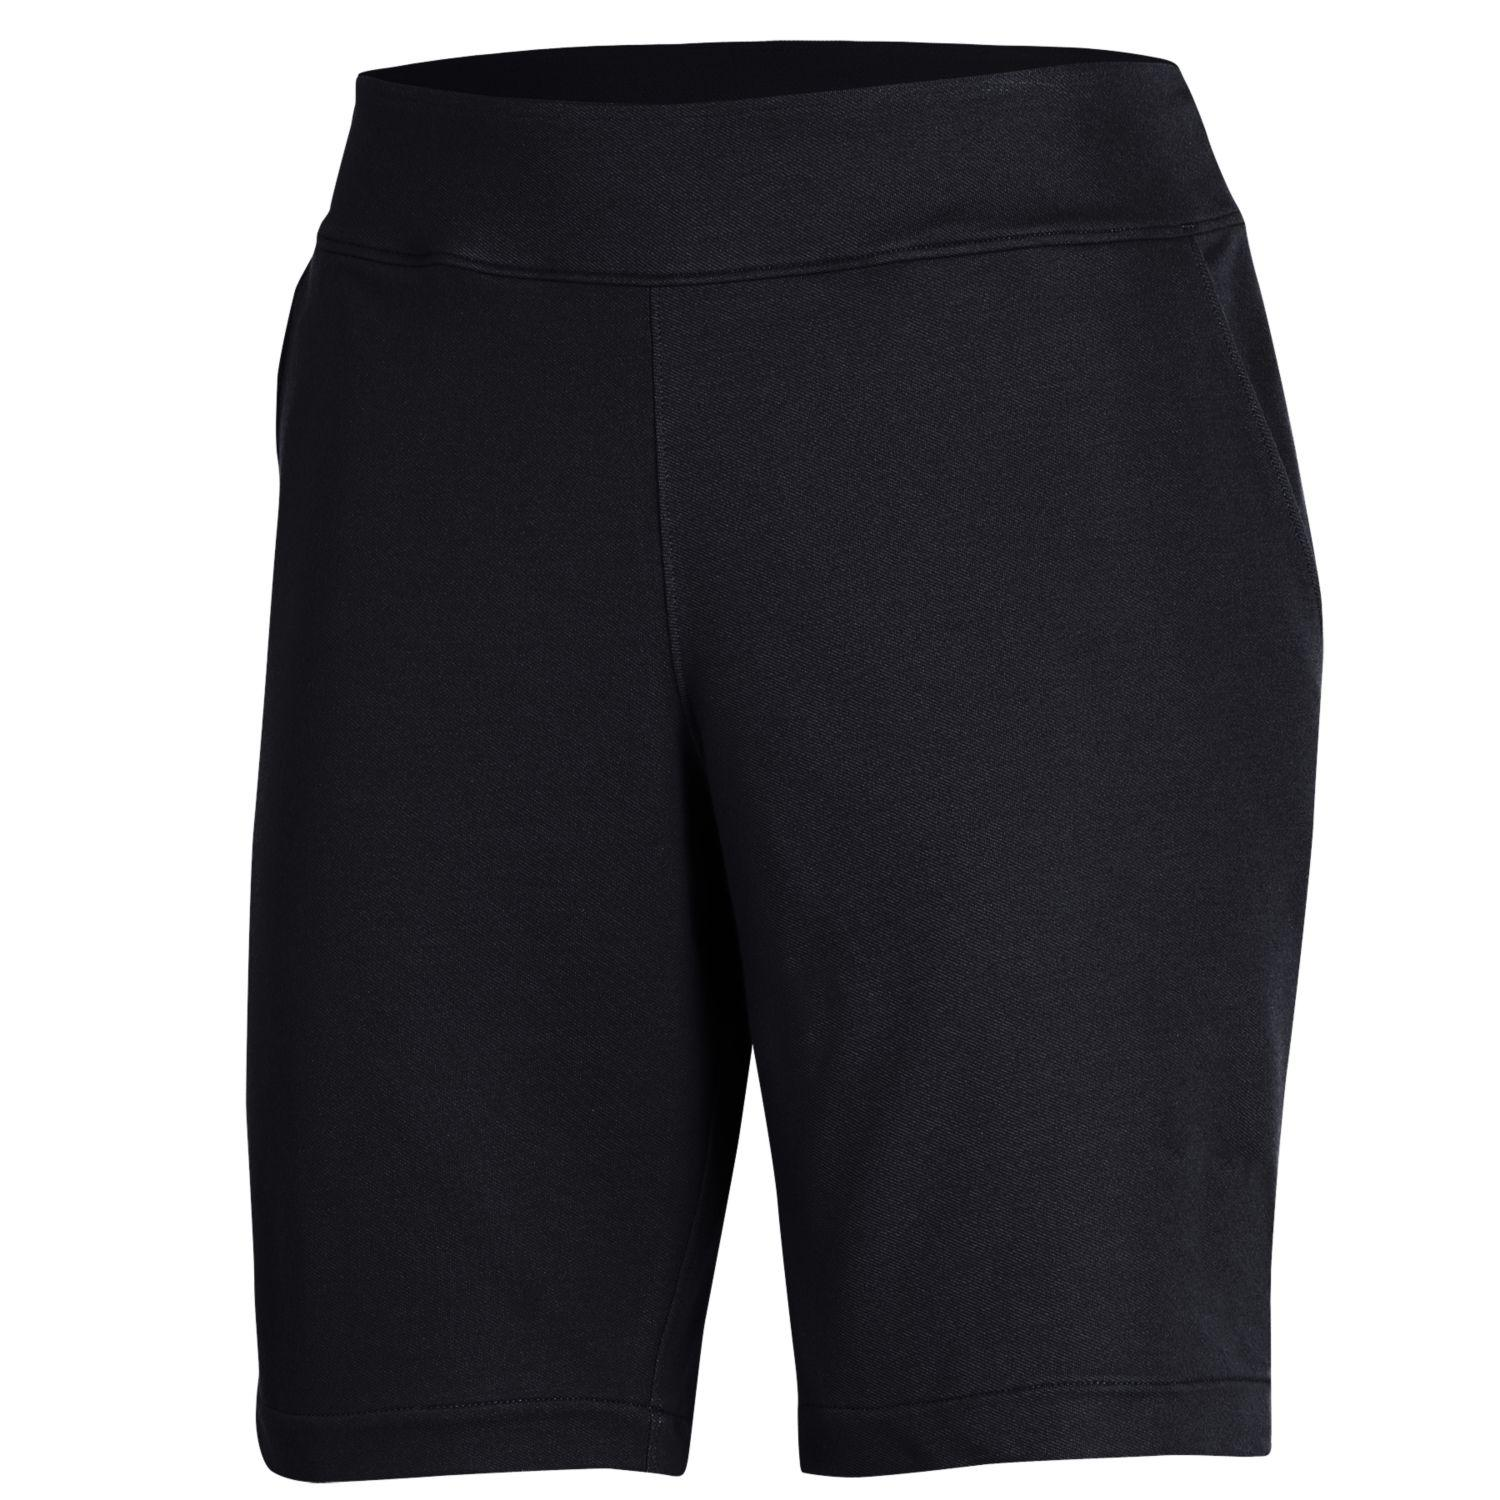 Under Armour Women's 2018 Repose Short